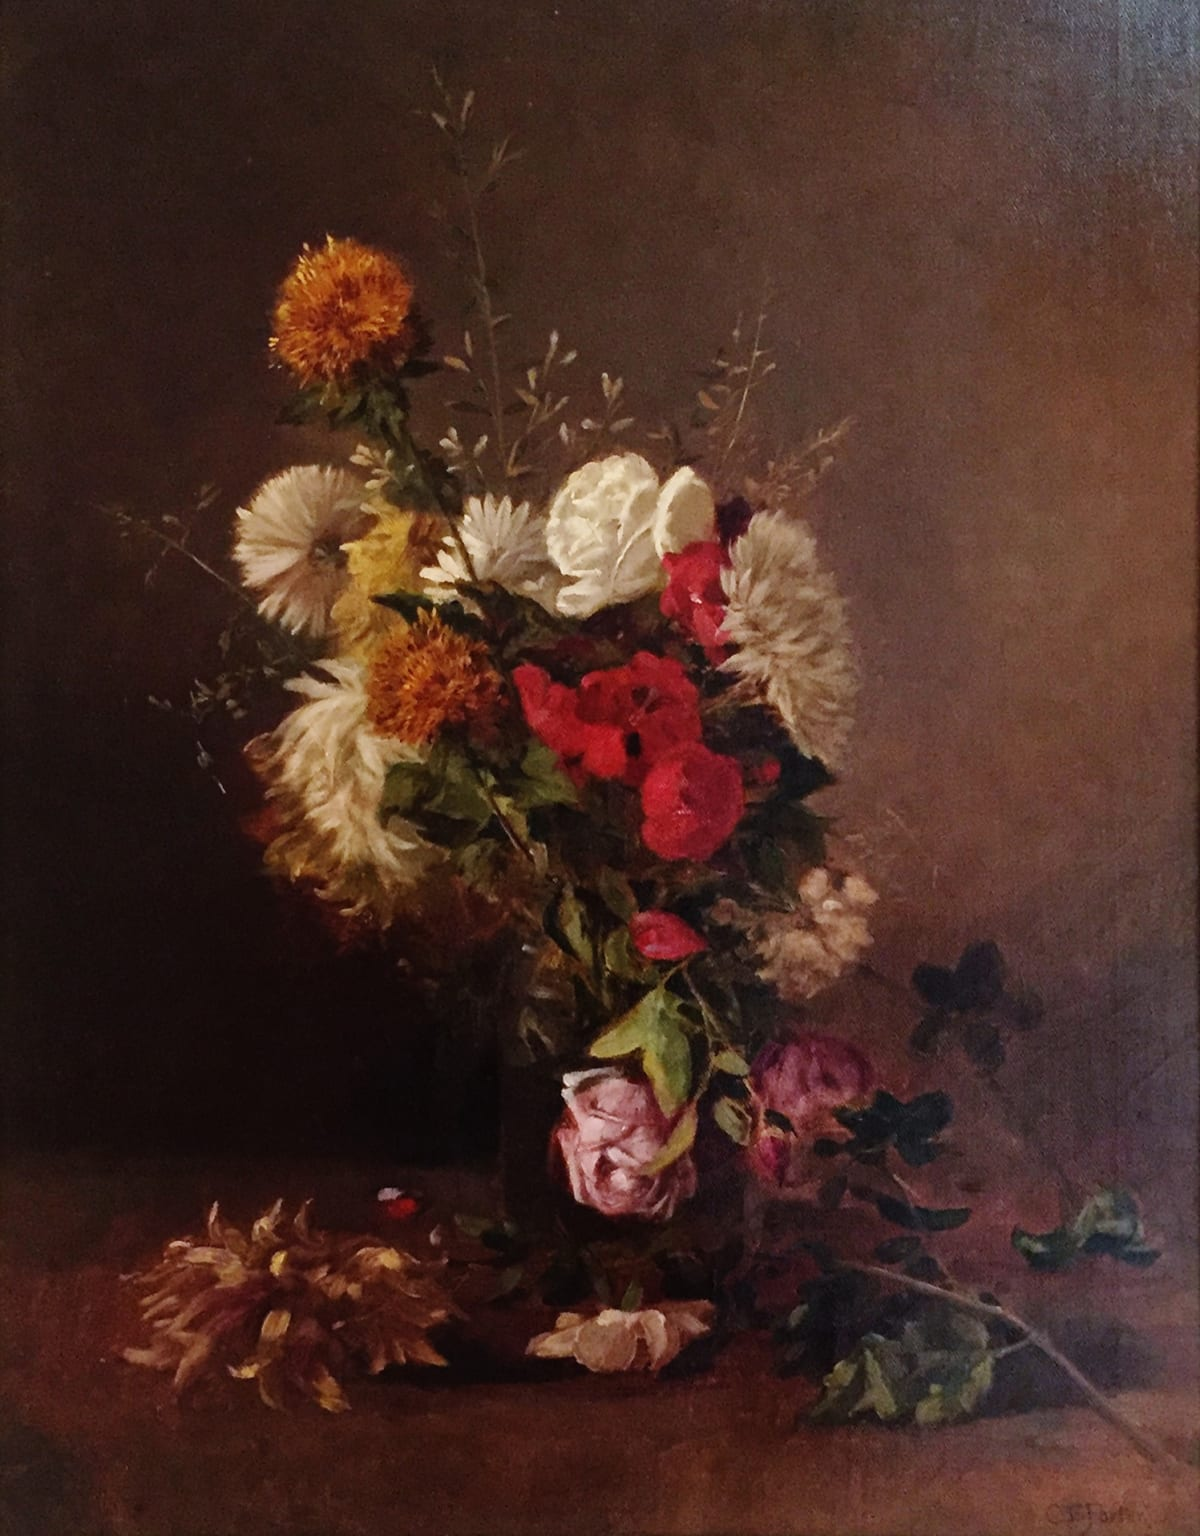 Charles Ethan Porter Florae - Mixed Bouquet Roses in Clear Vase Canvas Pasted to Board Framed: 22 x 27 x 2 1/2 Unframed 18 x 24